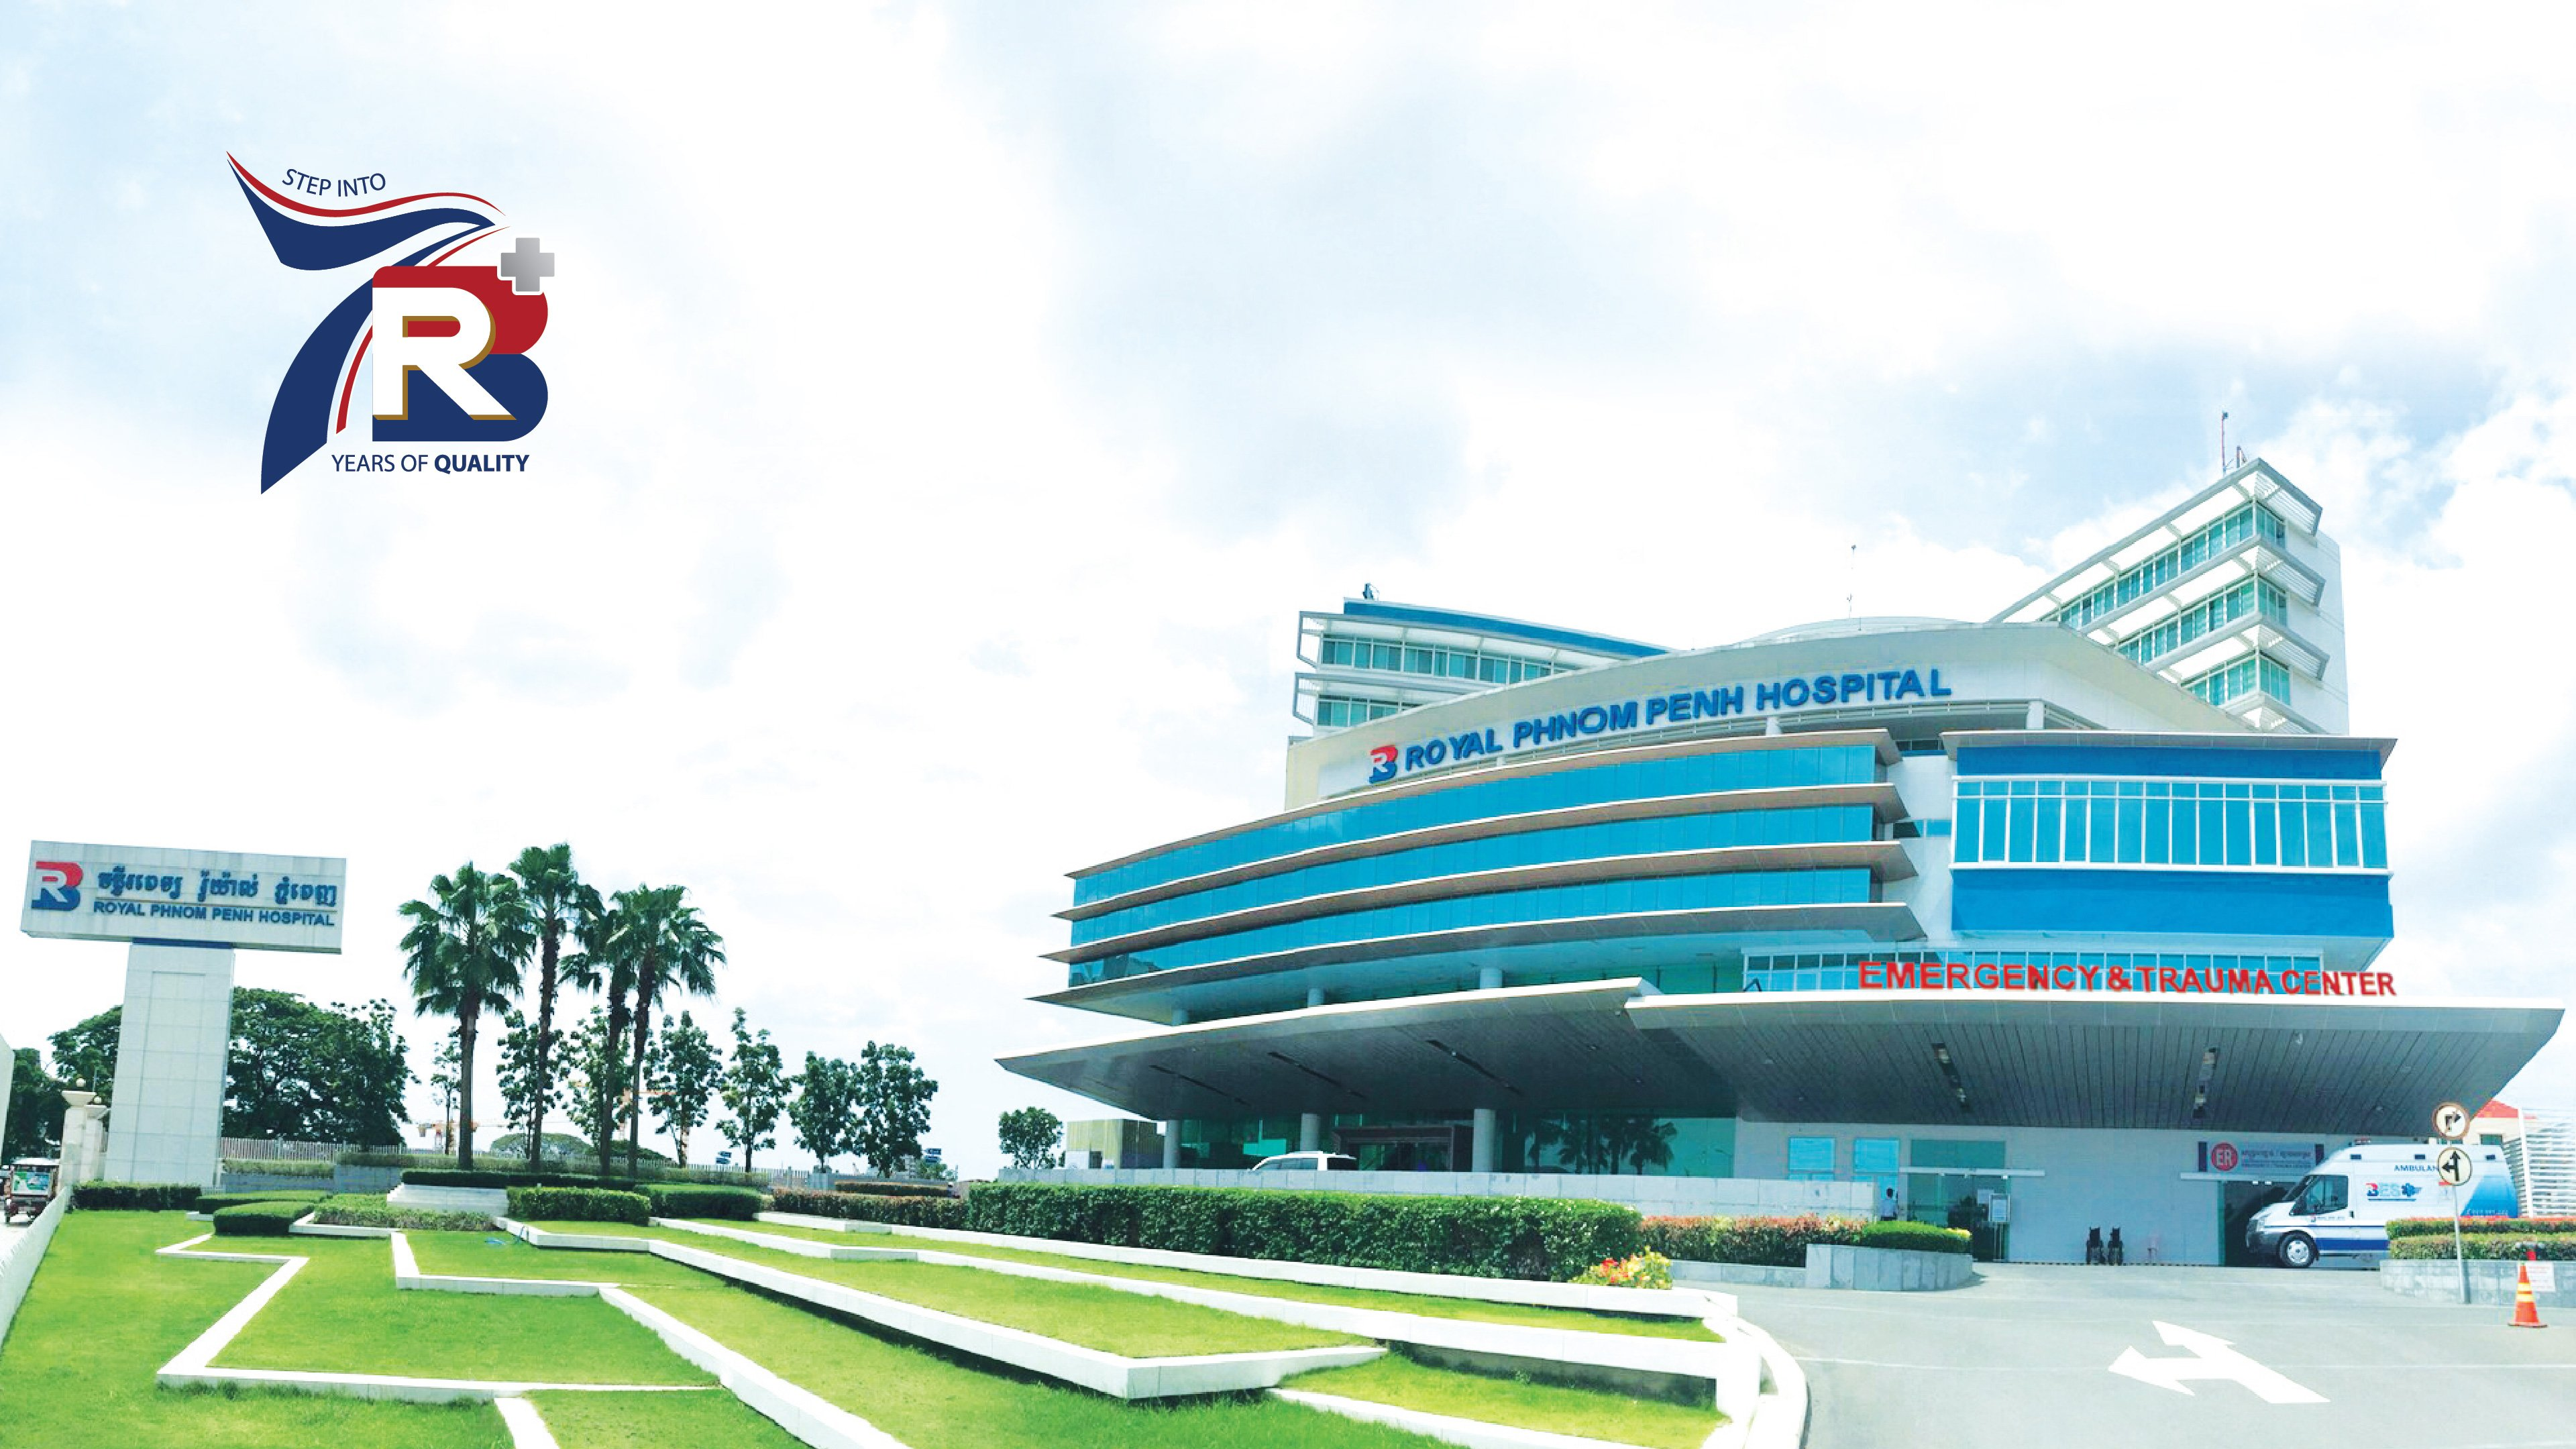 BEST HOSPITAL OF THE YEAR 2021 BY GLOBAL HEALTH AND TRAVEL INTERNATIONAL